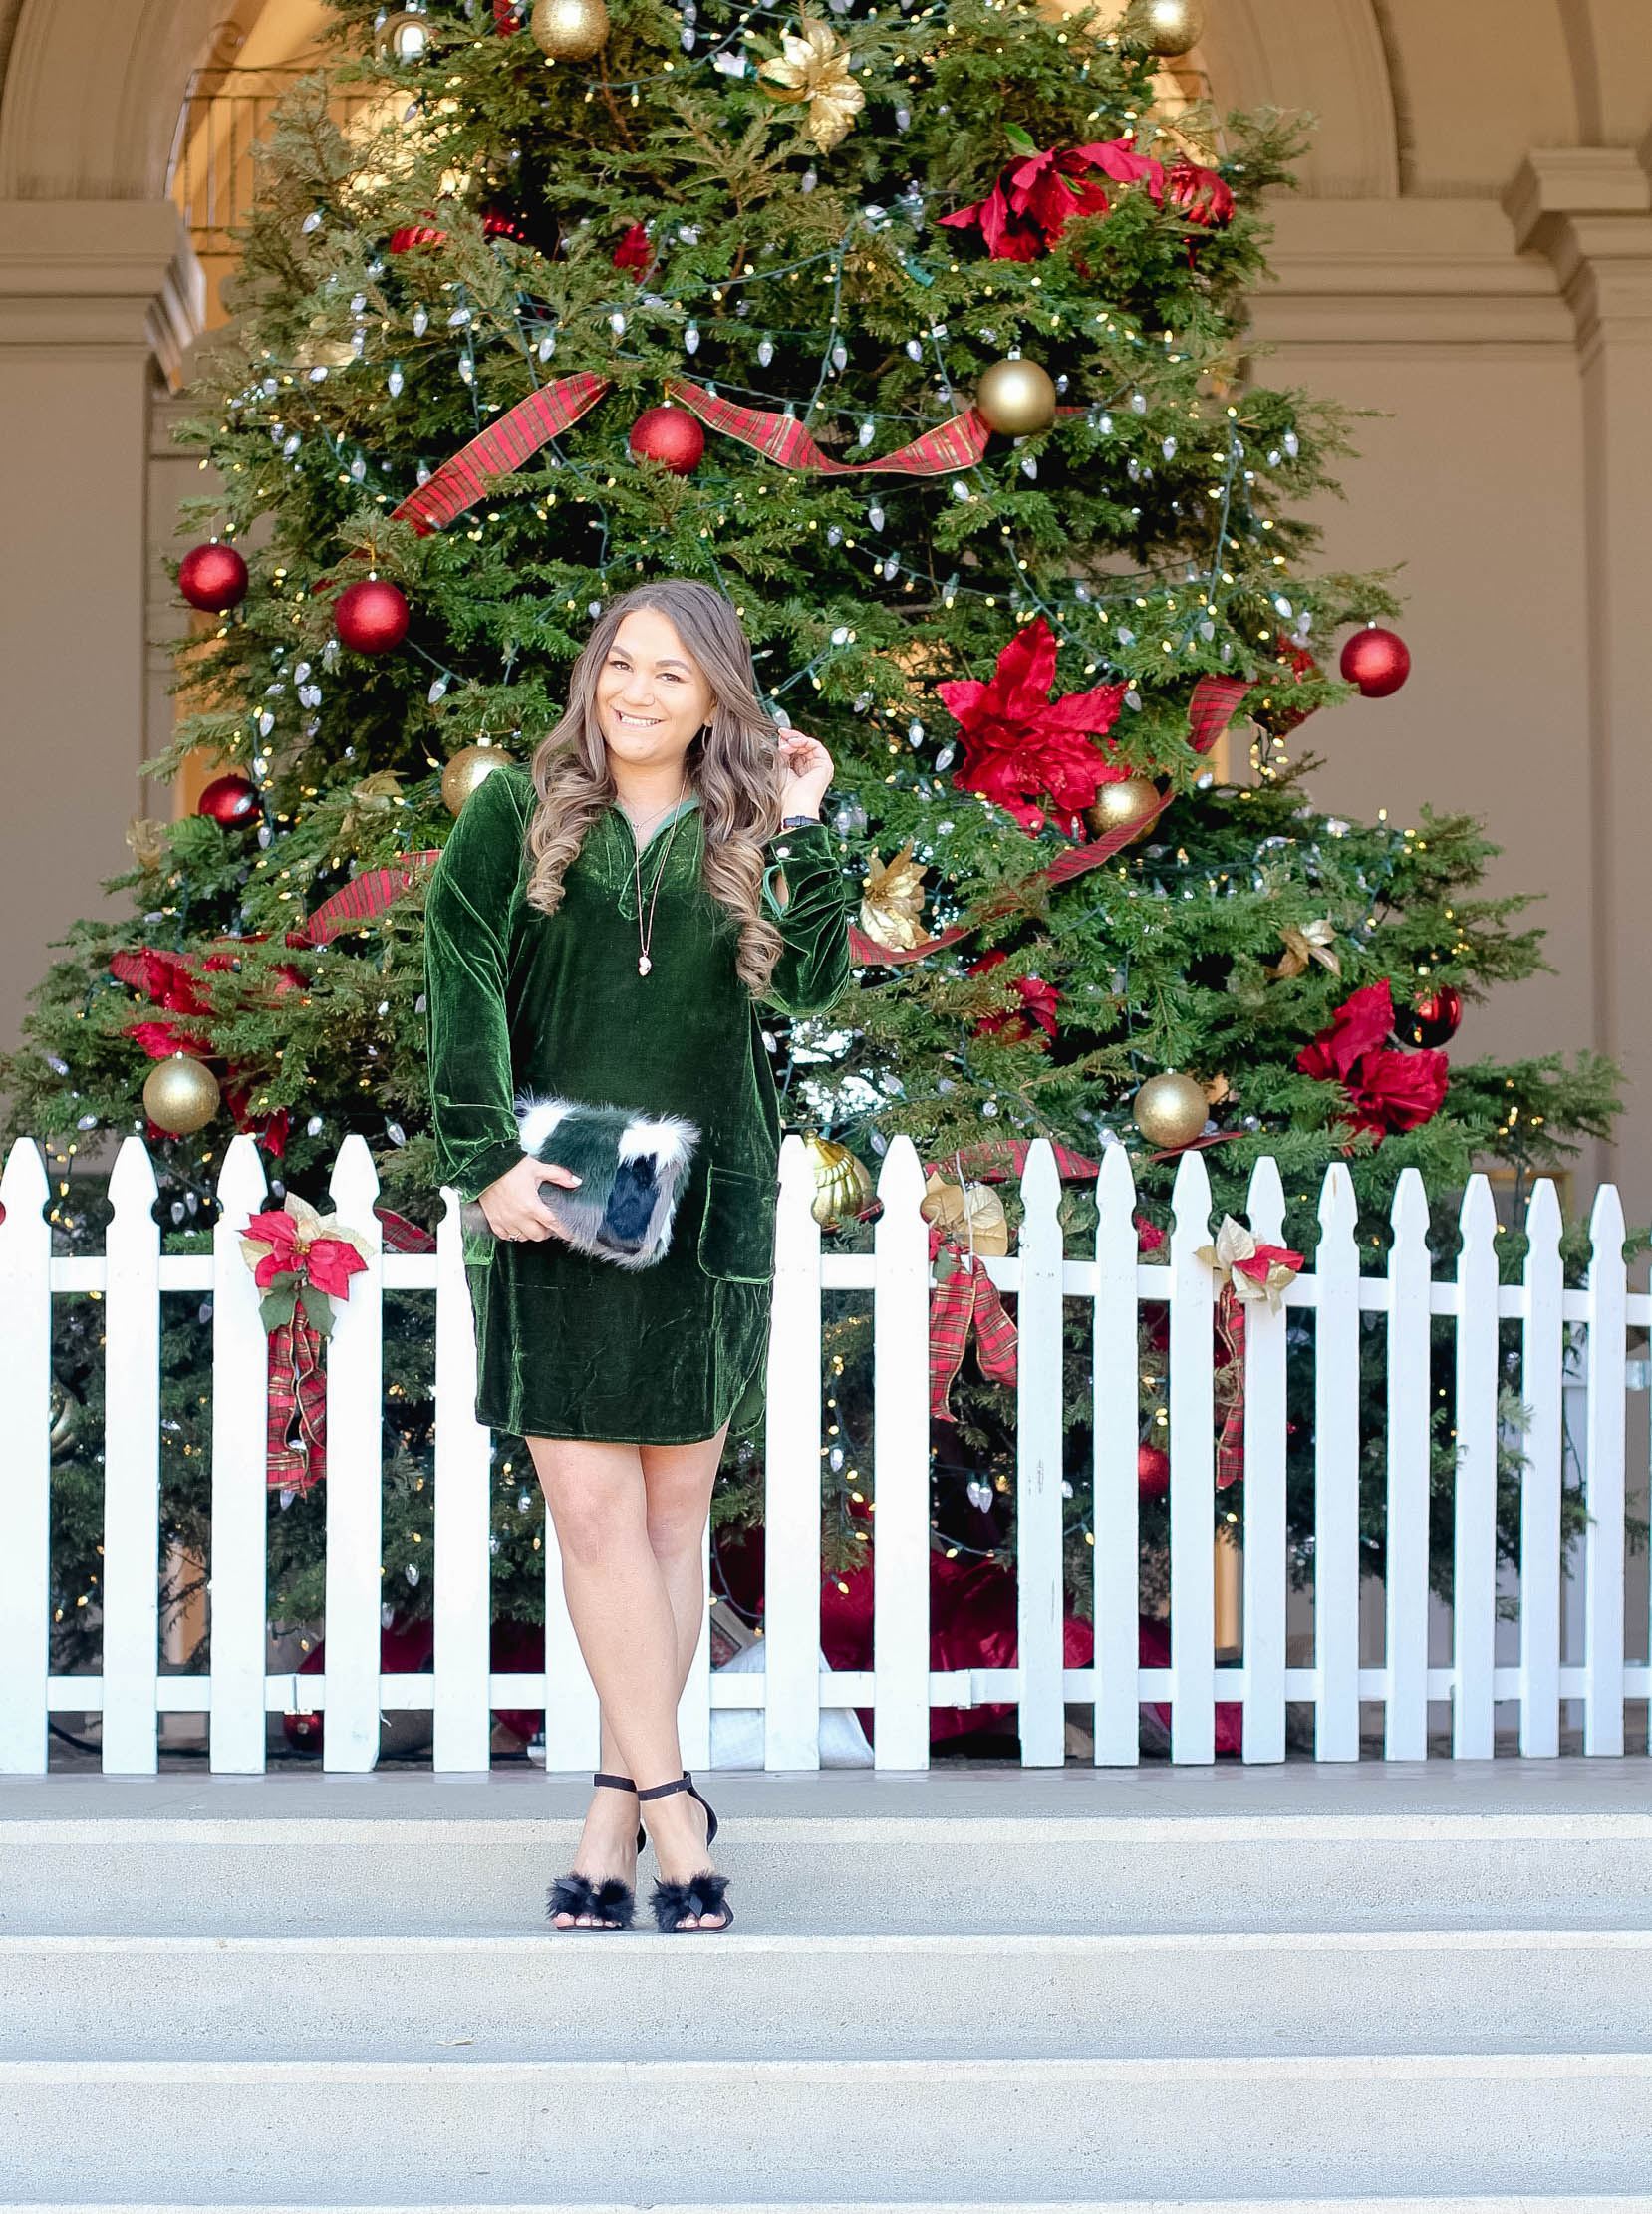 missyonmadison, MissyOnMadisonInstagram, melissa tierney, holiday style, velvet dress, zaful, green velvet dress, faux fur heels, furry heels, furry clutch, faux fur clutch, vera bradley, holiday gifting, hair goals, blogger style, outfit inspo, holiday outfit inspo, winter style, christmas style, merry christmas, christmas tree, christmas 2016, pasadena christmas tree, pasadena christmas, la blogger,